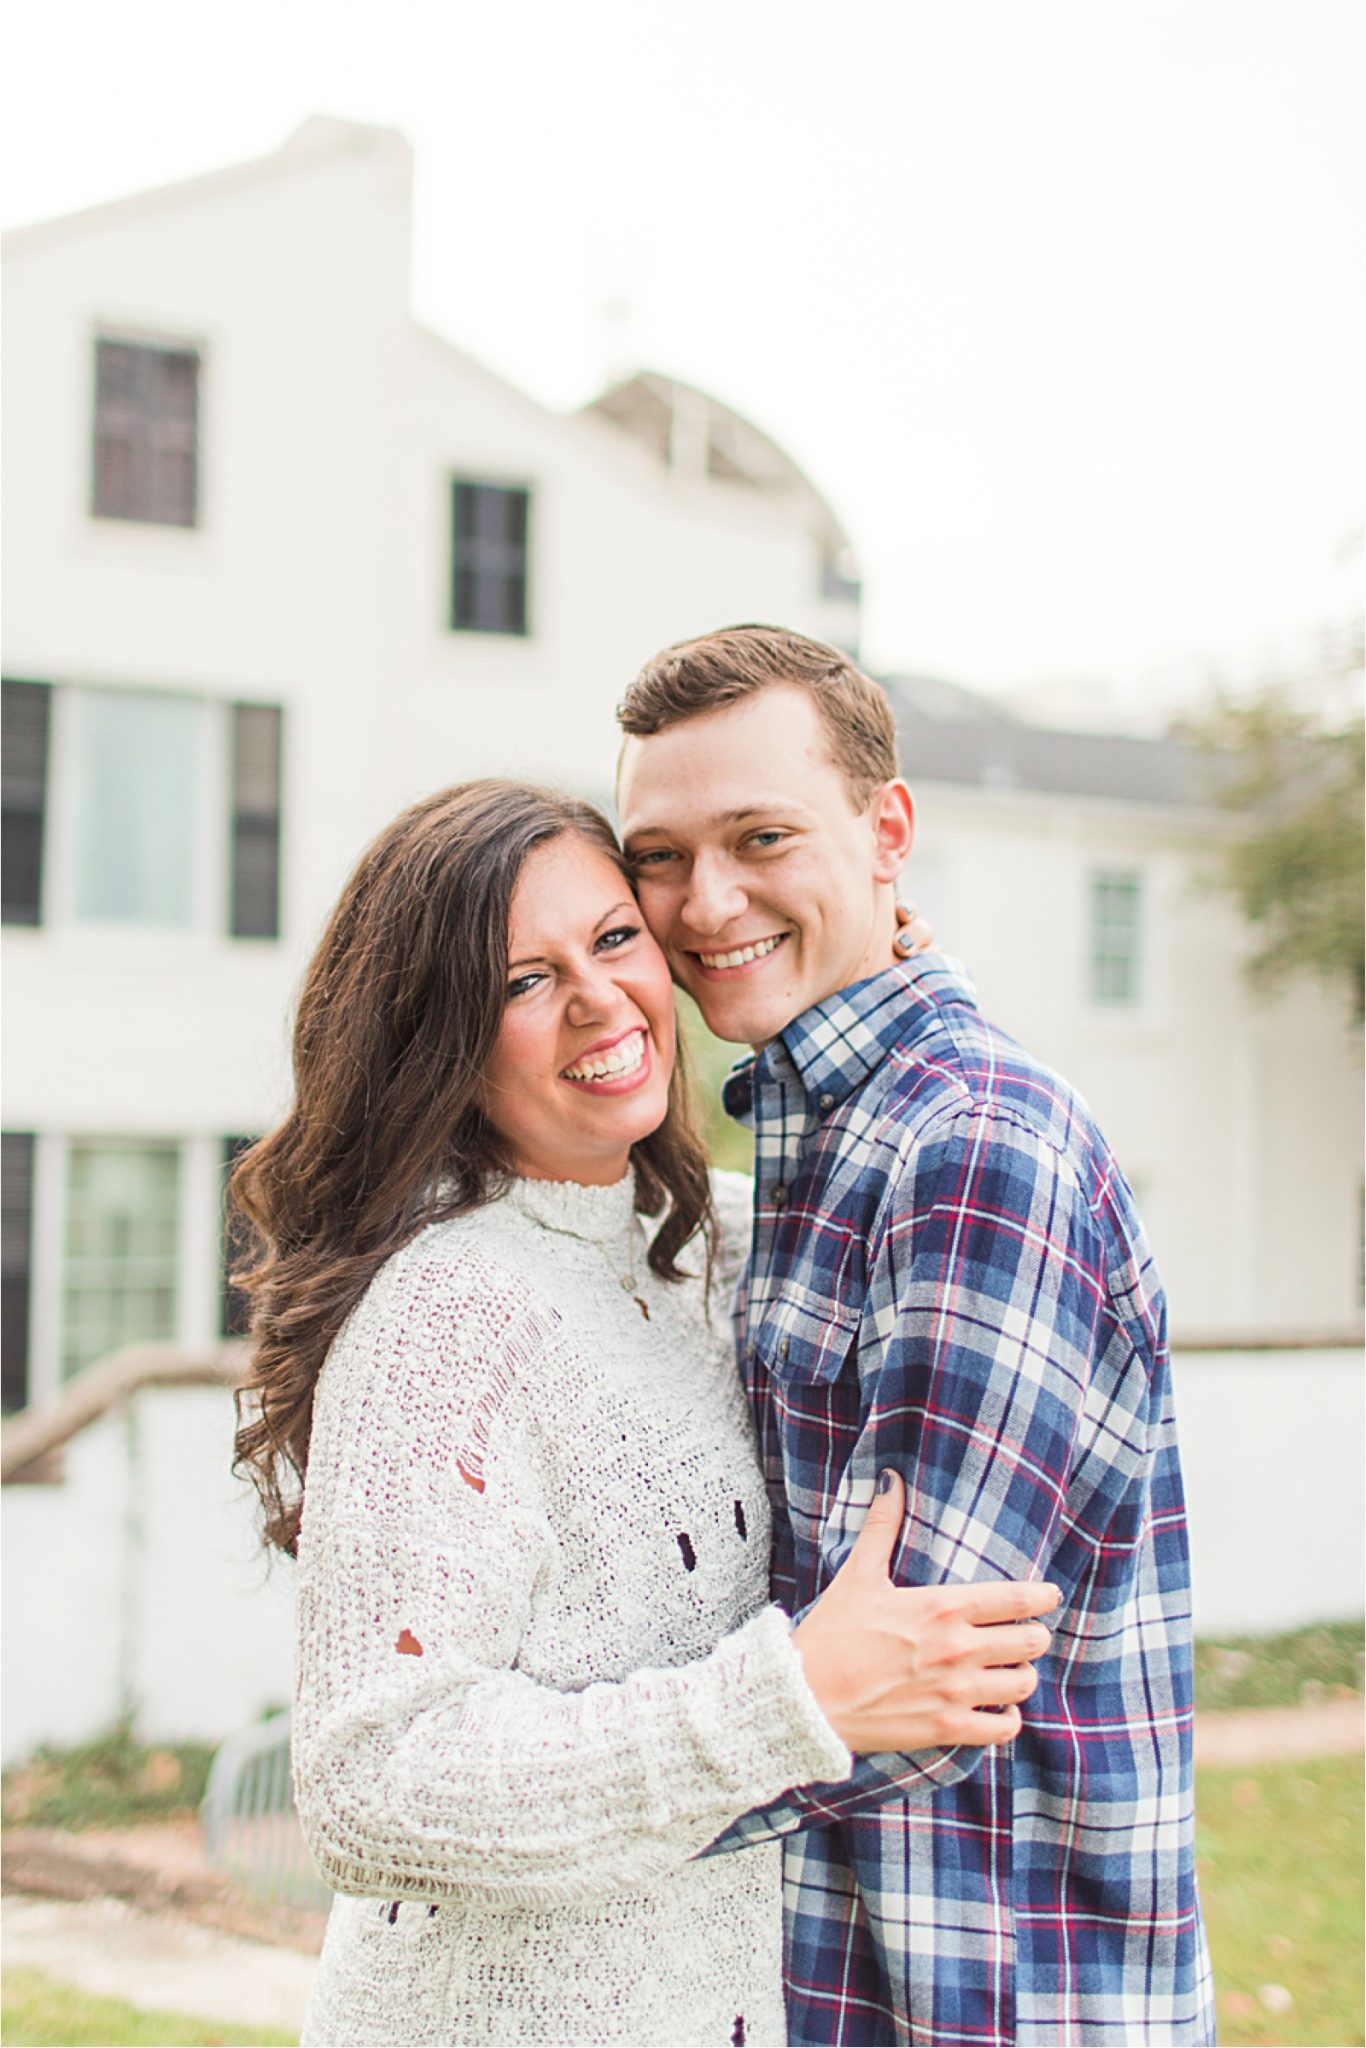 Mobile Alabama Photographer-Engagement Session-Josi + J.R.-Fall Engagement Session-Couple shoot-Candid-Forte Conde-Forte Conde Photoshoot